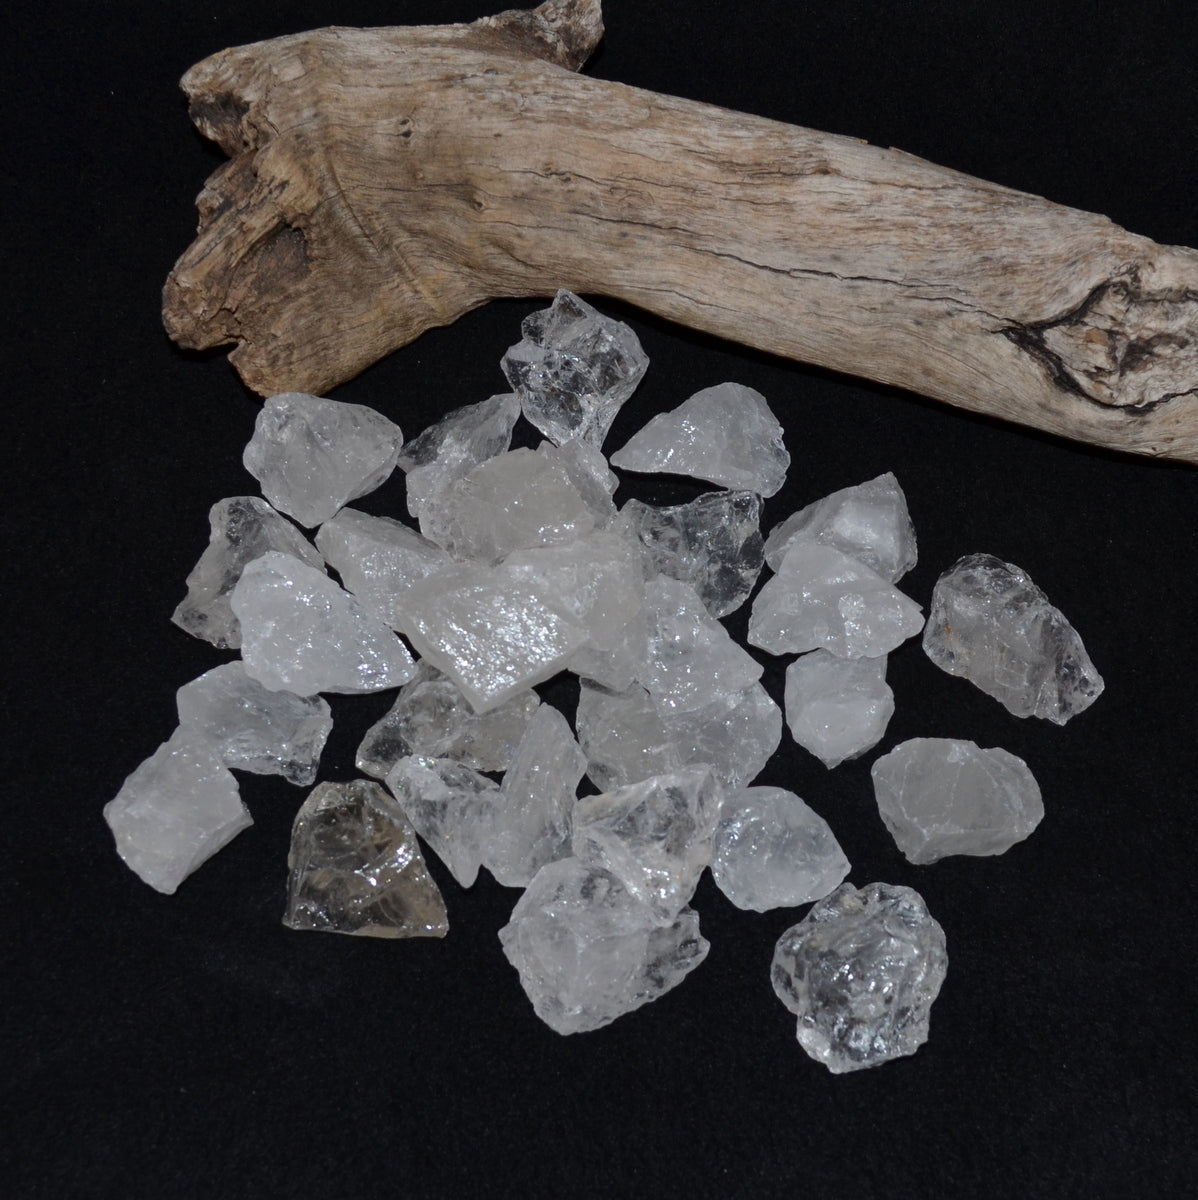 Clear Quartz Rough Chunks - Clarity Clearing Cleansing - Shop Now at Illiom Crystals - We have Afterpay